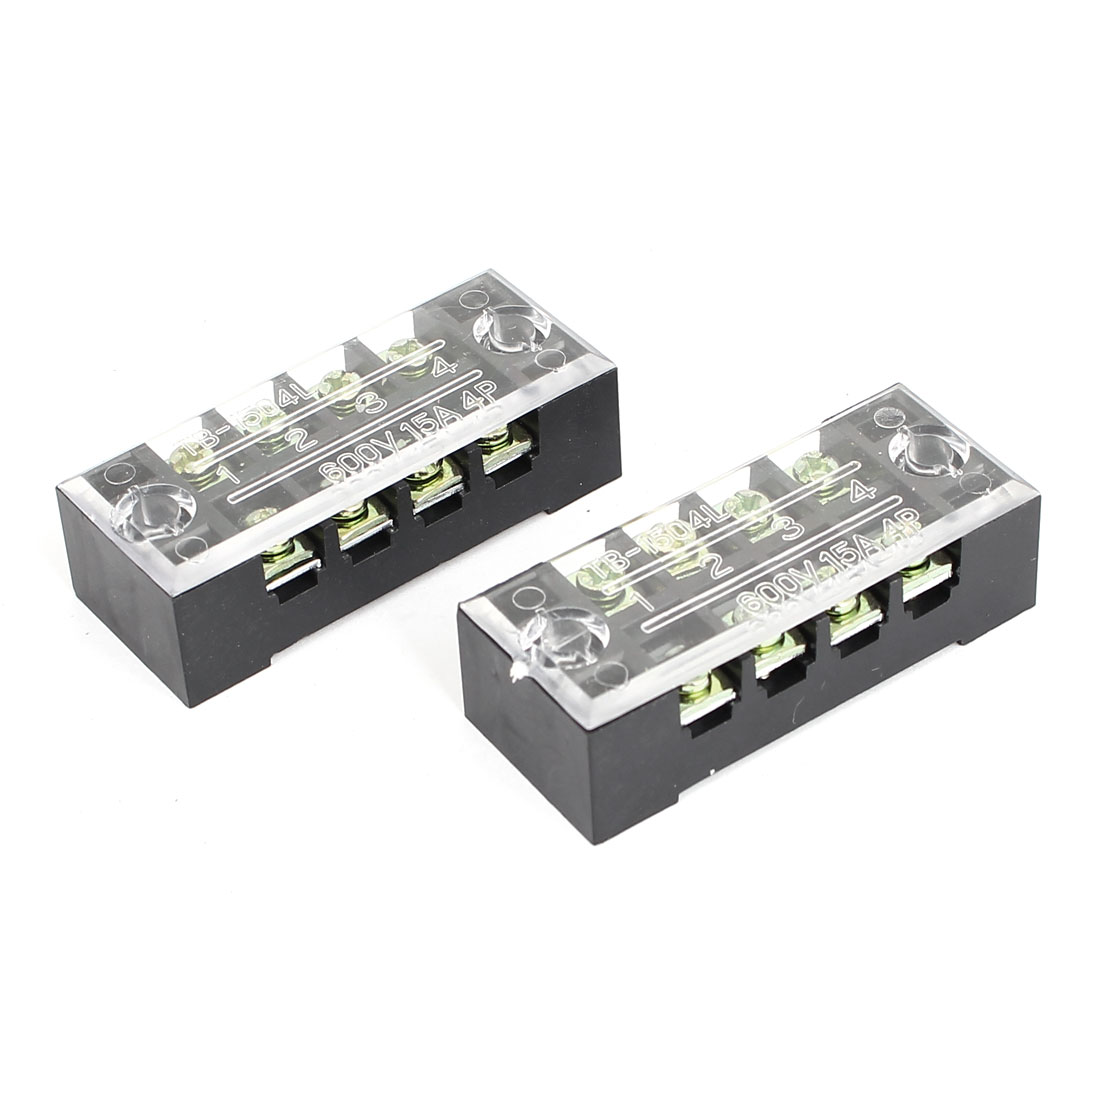 TB1504L Double Row 4 Position 600V 15A Power Terminals Block Barrier Strip 2pcs